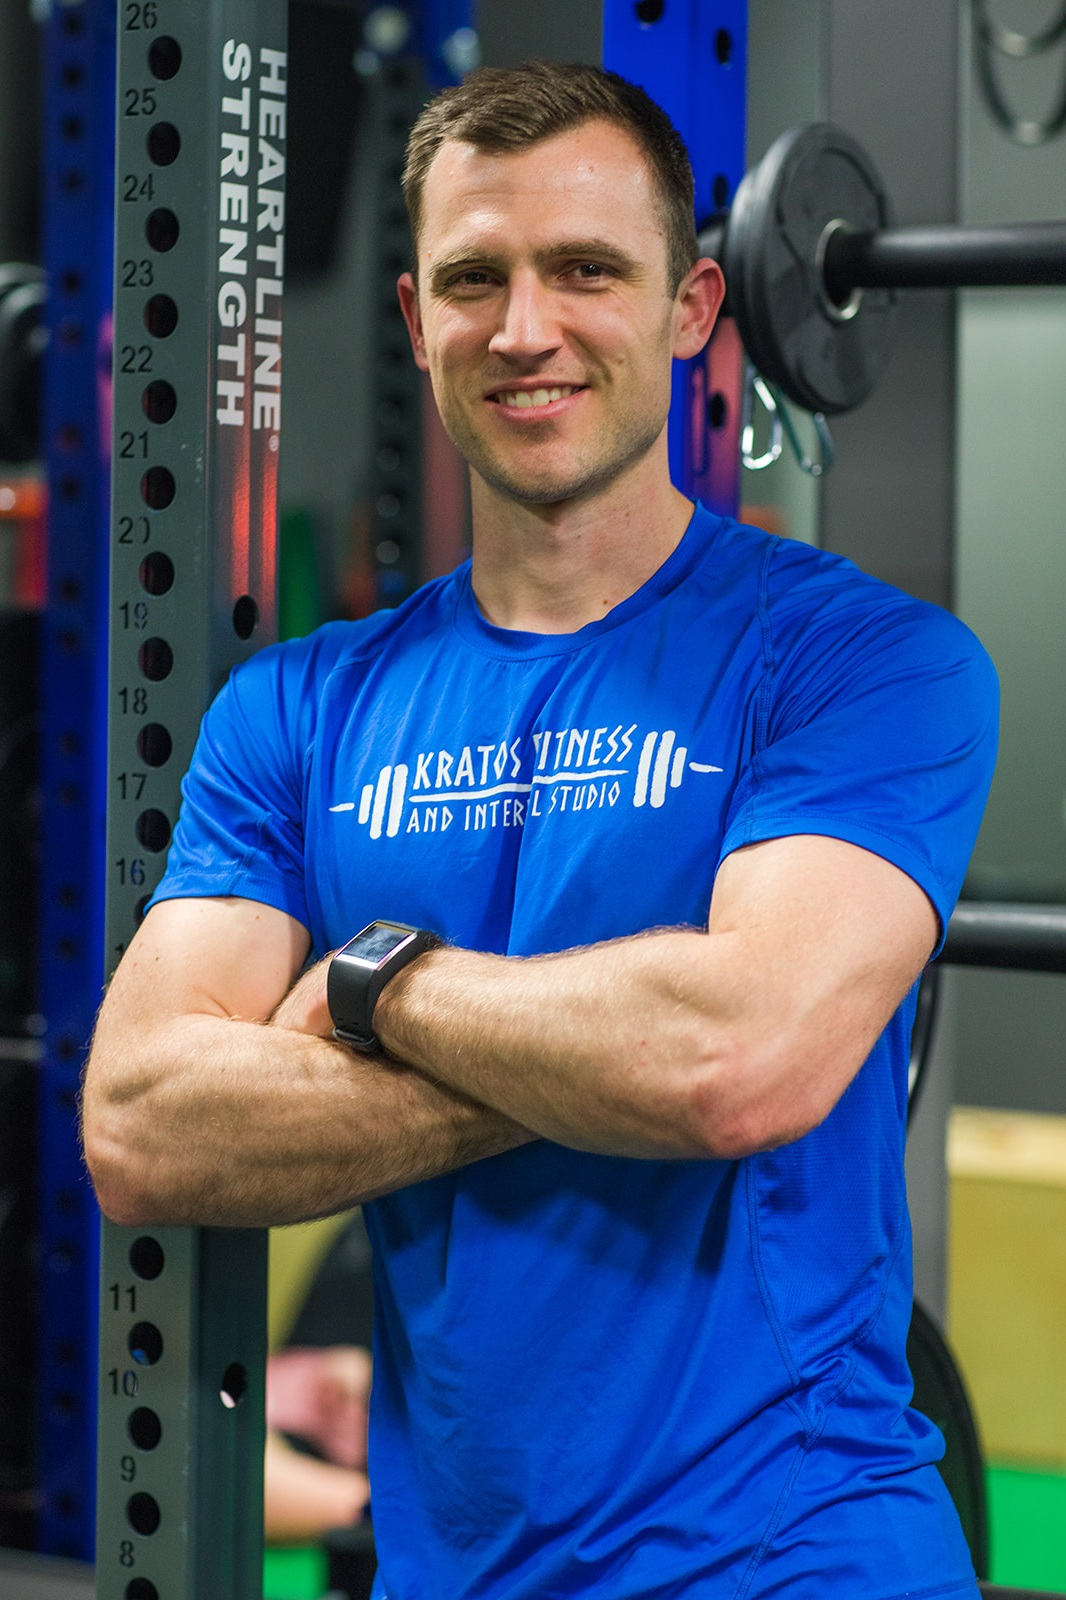 Tim Wamsley M.S.Owner/Trainer - NCSA Certified Strength and Conditioning Coach (CSCS). ACSM Certified Exercise Physiologist (EP-C)Background: M.S. in Health and Human Performance. 6 years Personal Training experience. NCAA Division 1 Strength and Conditioning coaching experience. 2 years experience as a Research Exercise Physiologist. 2 years Geriatric exercise experience